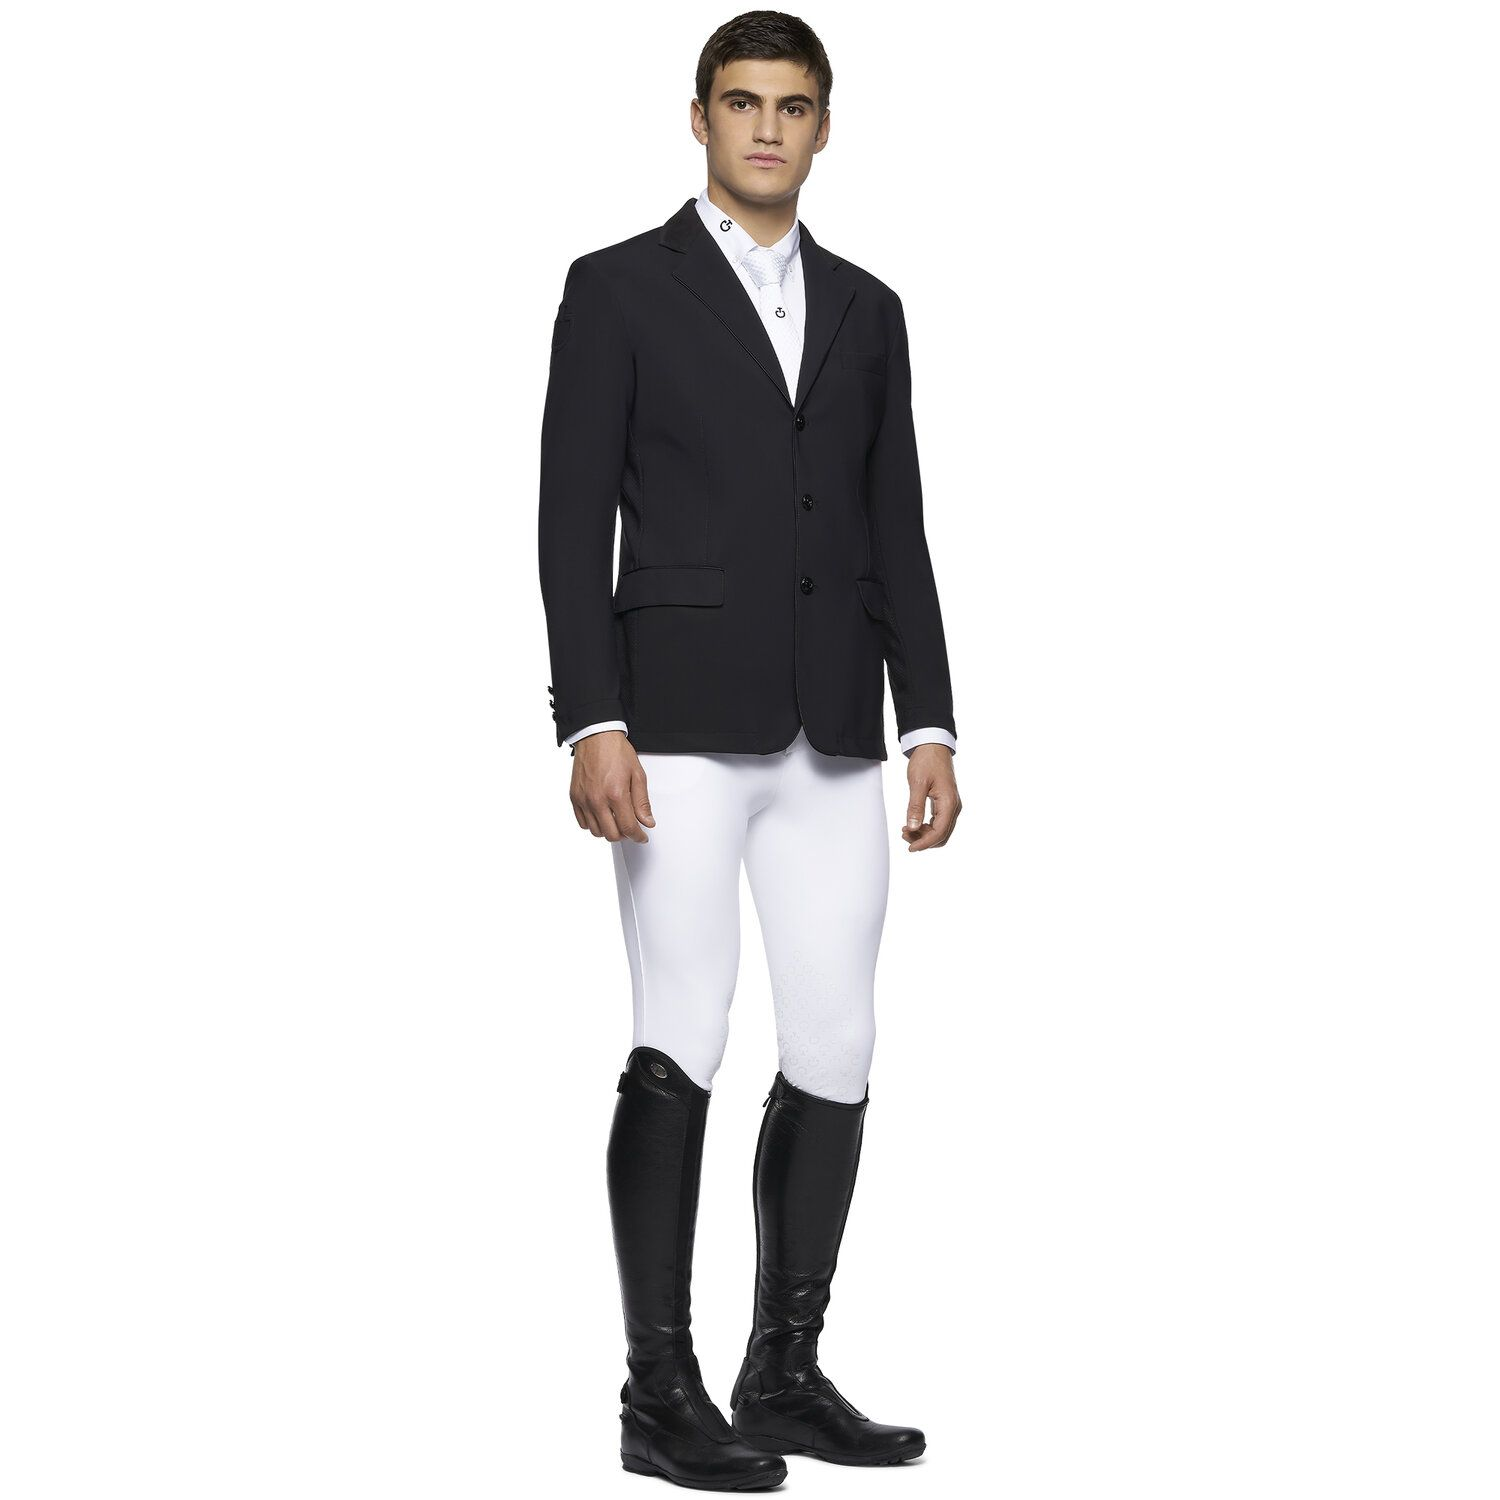 Men's riding jacket with perforated inserts